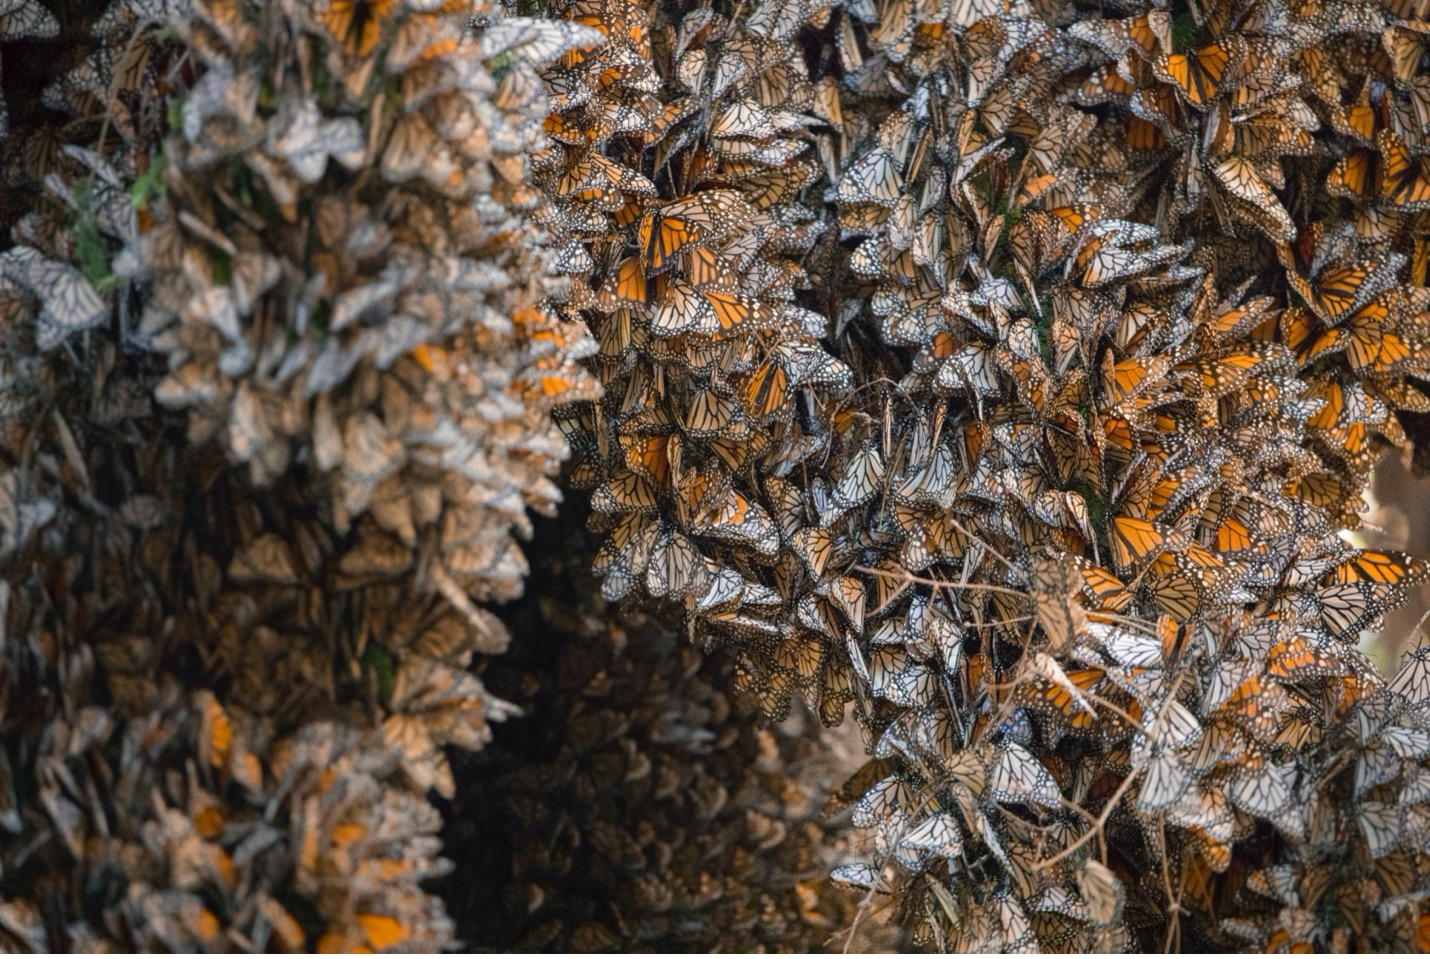 thousands of monarch butterflies cluster tightly in trees in mexico